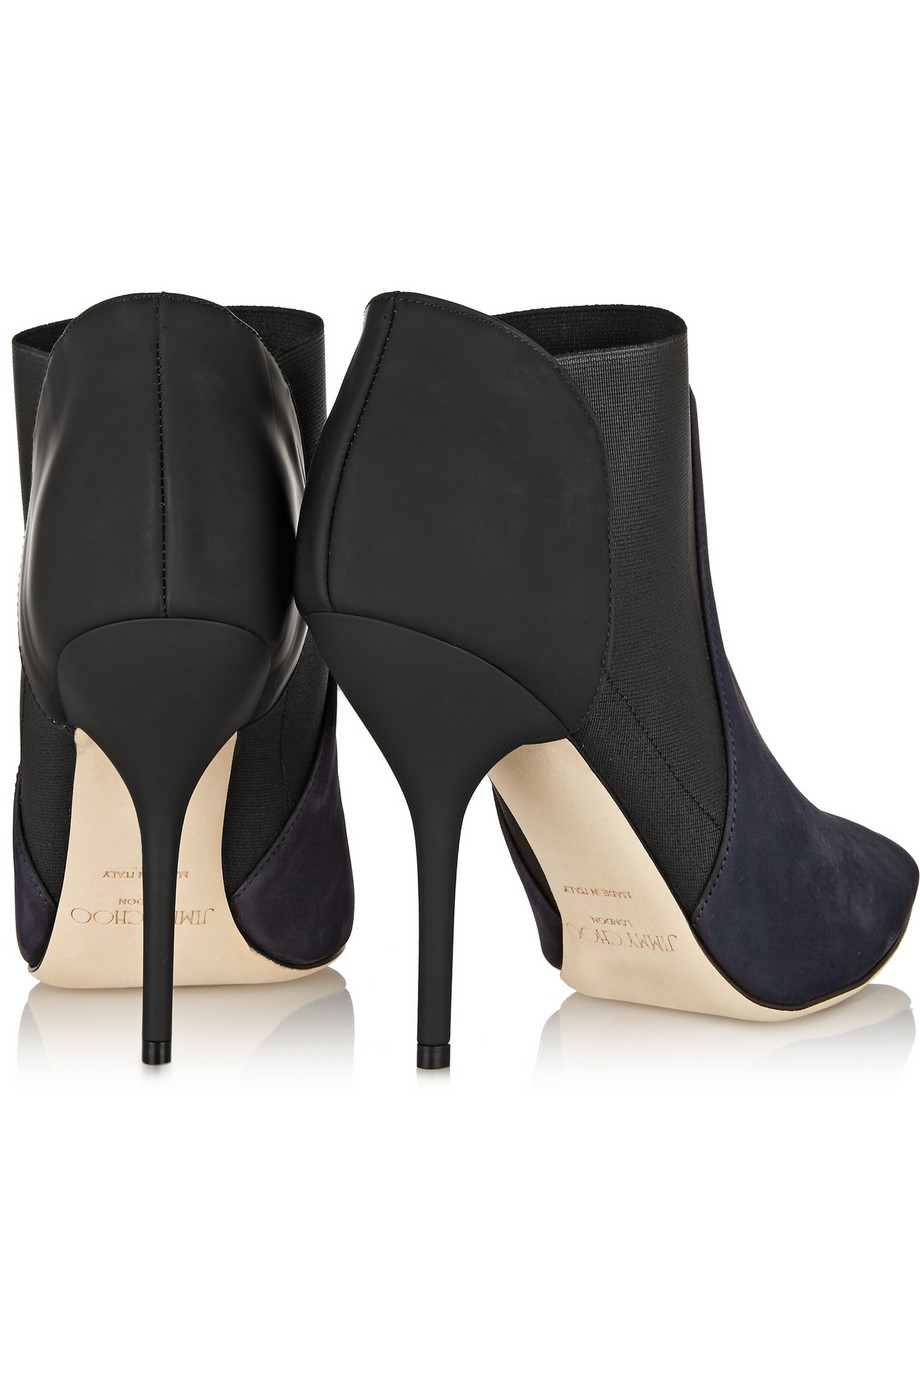 Jimmy Choo Deluxe Leather Booties buy cheap order 8oUw6gEd